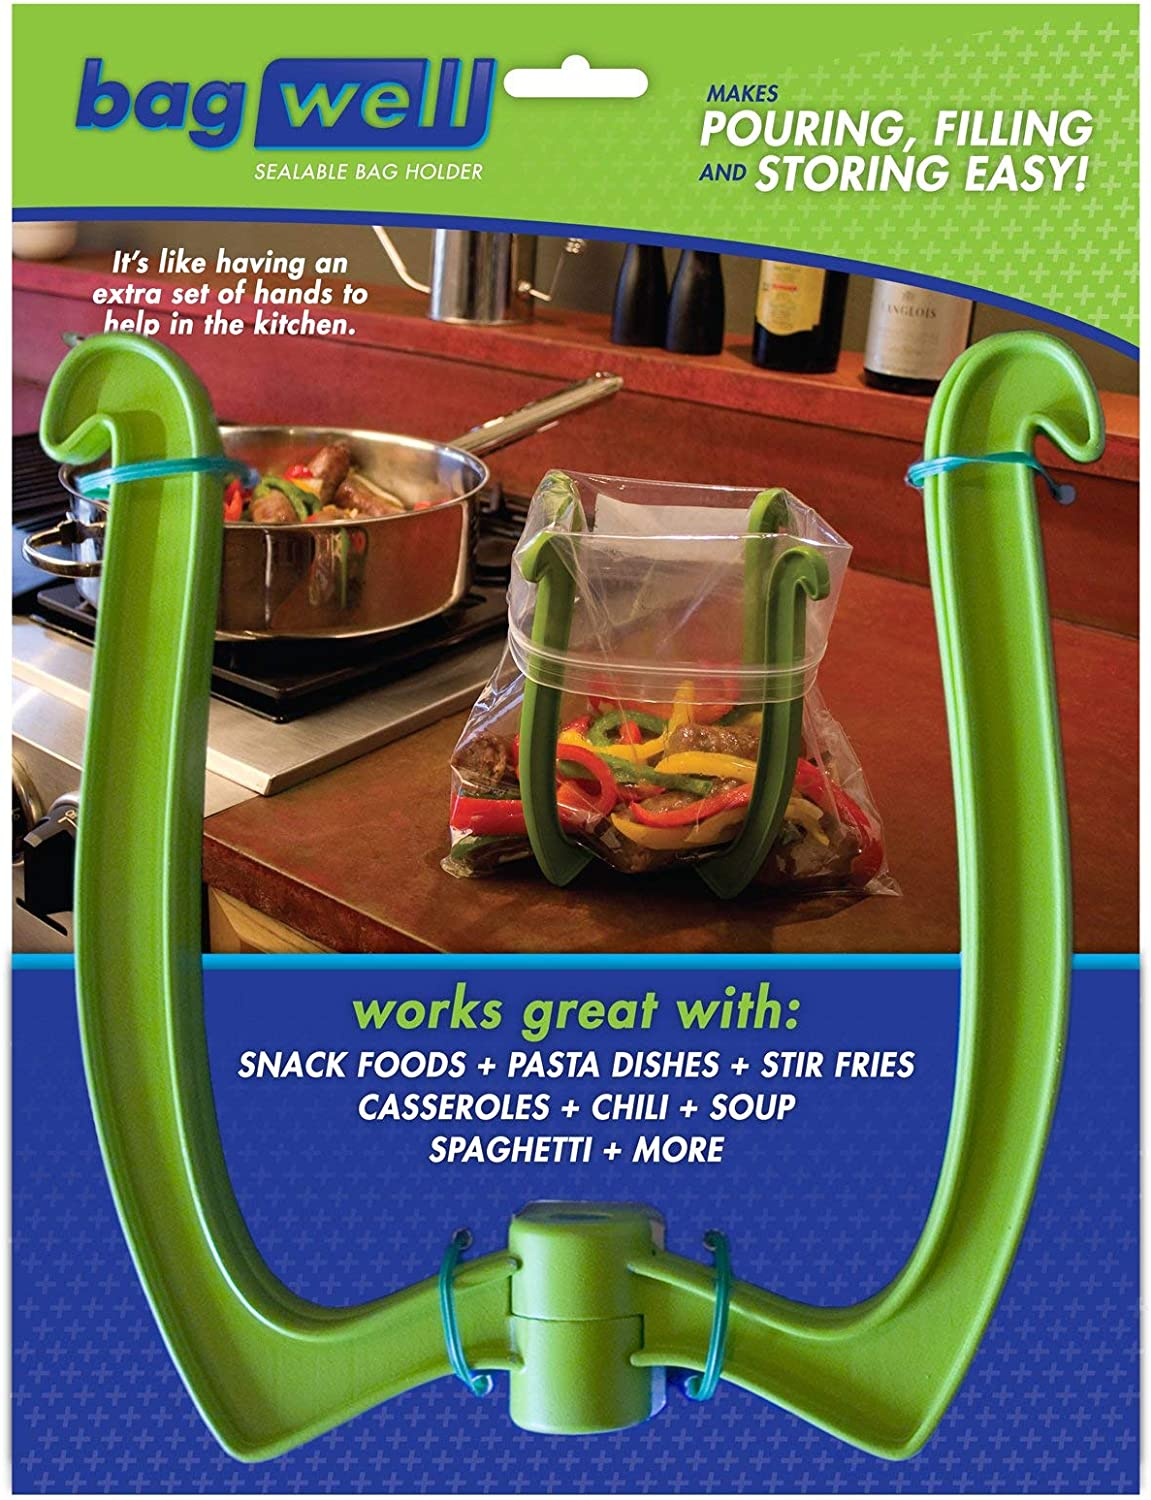 Bag Well Sealable Holder Max 41% OFF Max 46% OFF for Storage 1 Gallon Bags